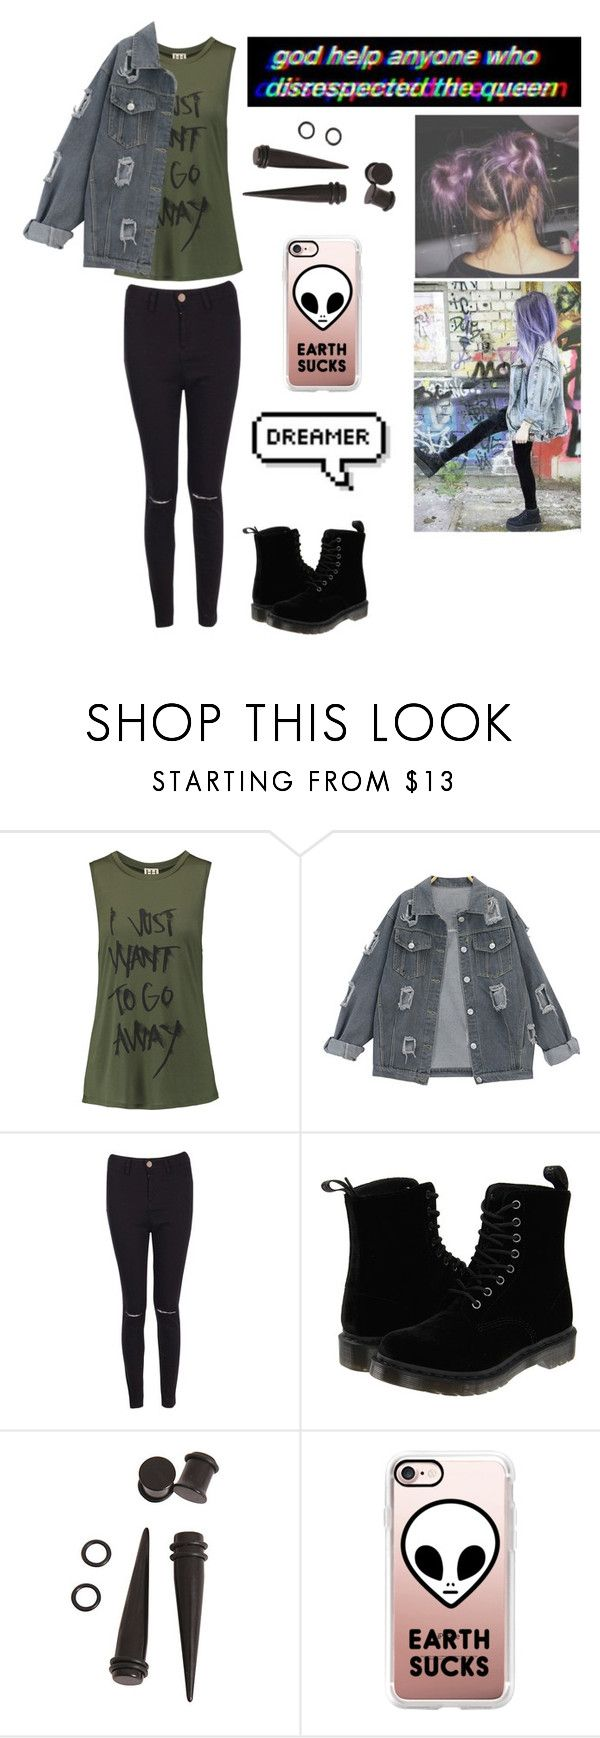 """""""grunge"""" by once-dead-twice-shy ❤ liked on Polyvore featuring Haute Hippie, Boohoo, Dr. Martens, Manic Panic NYC, Hot Topic and Casetify"""